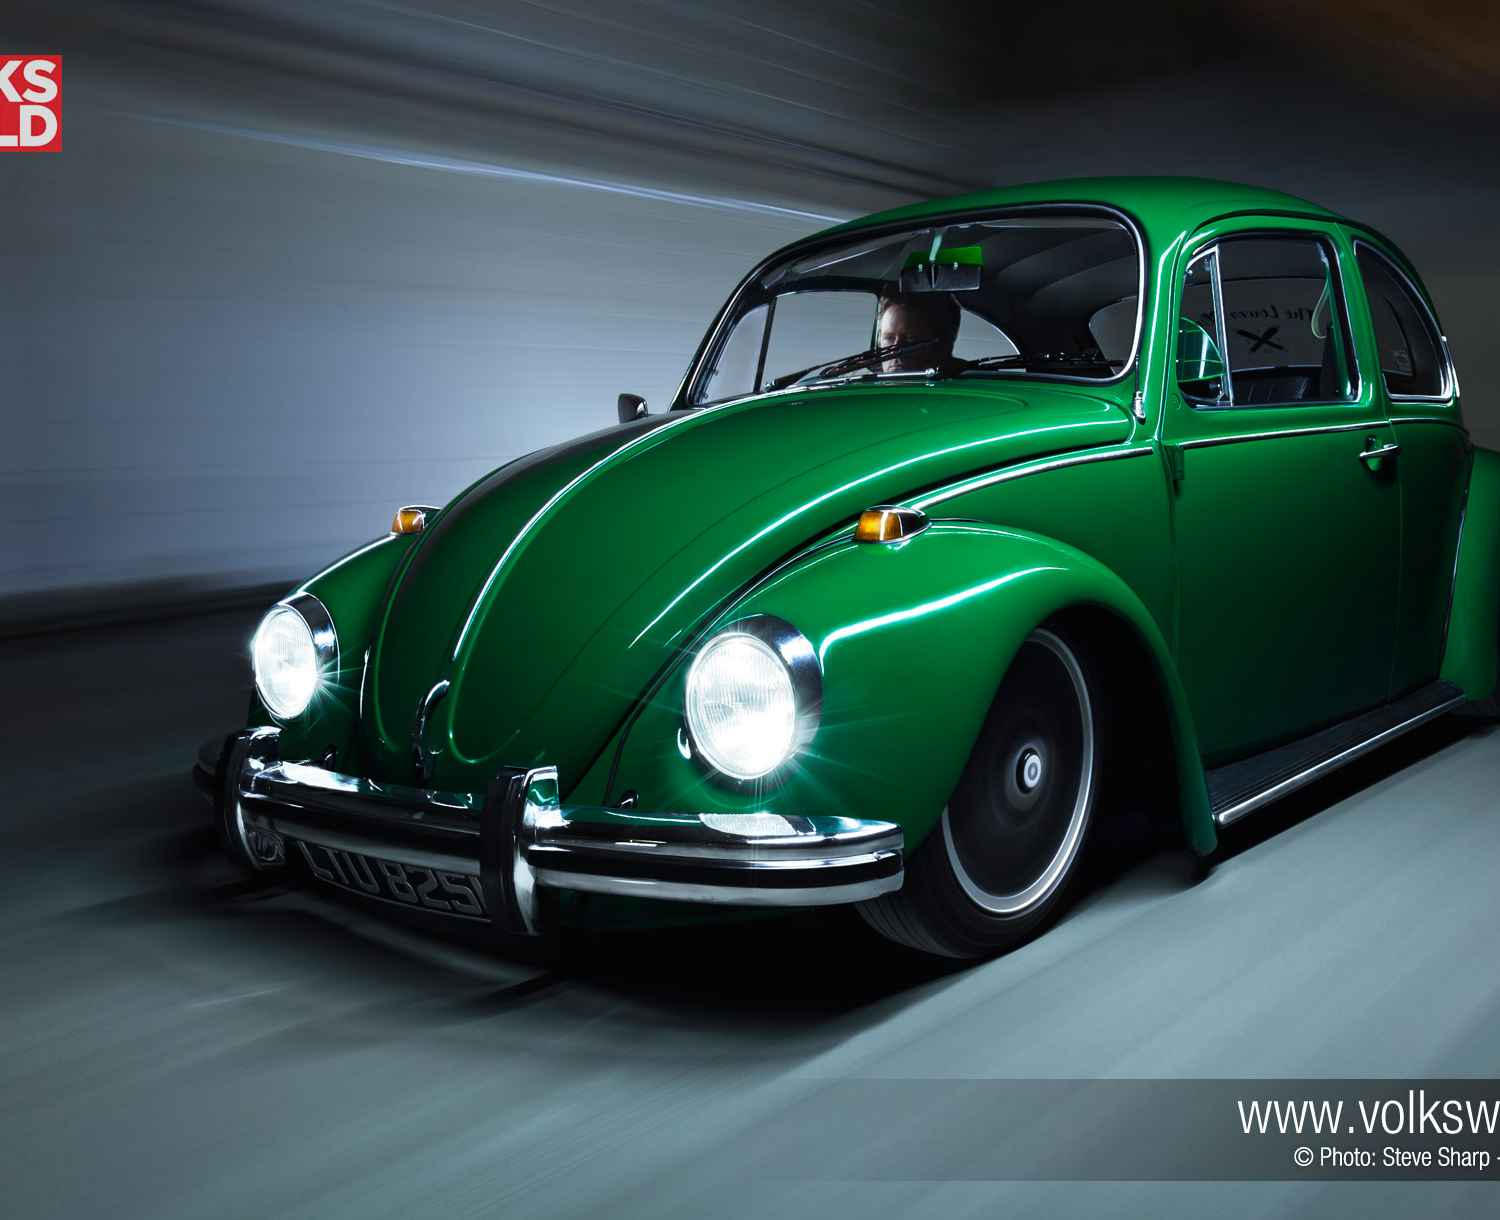 Vehicles Volkswagen Beetle Wallpaper, VW BeetleWallpapers